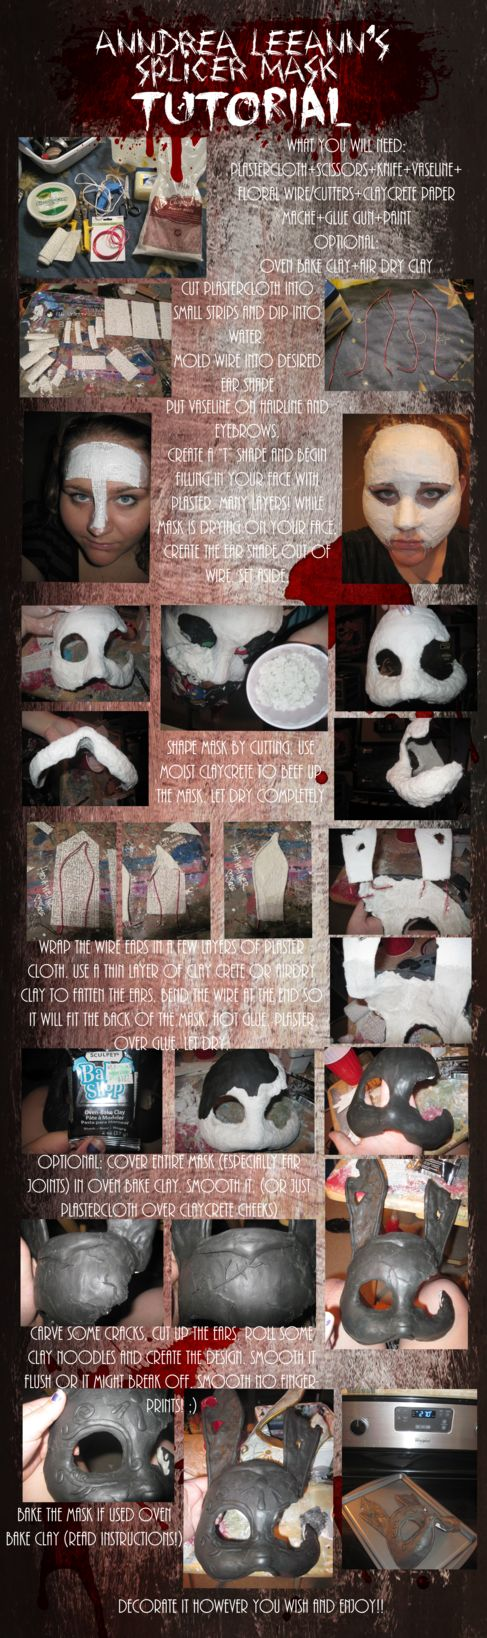 Splicer mask tutorial from Bioshock by AnndreaLeeann on deviantART